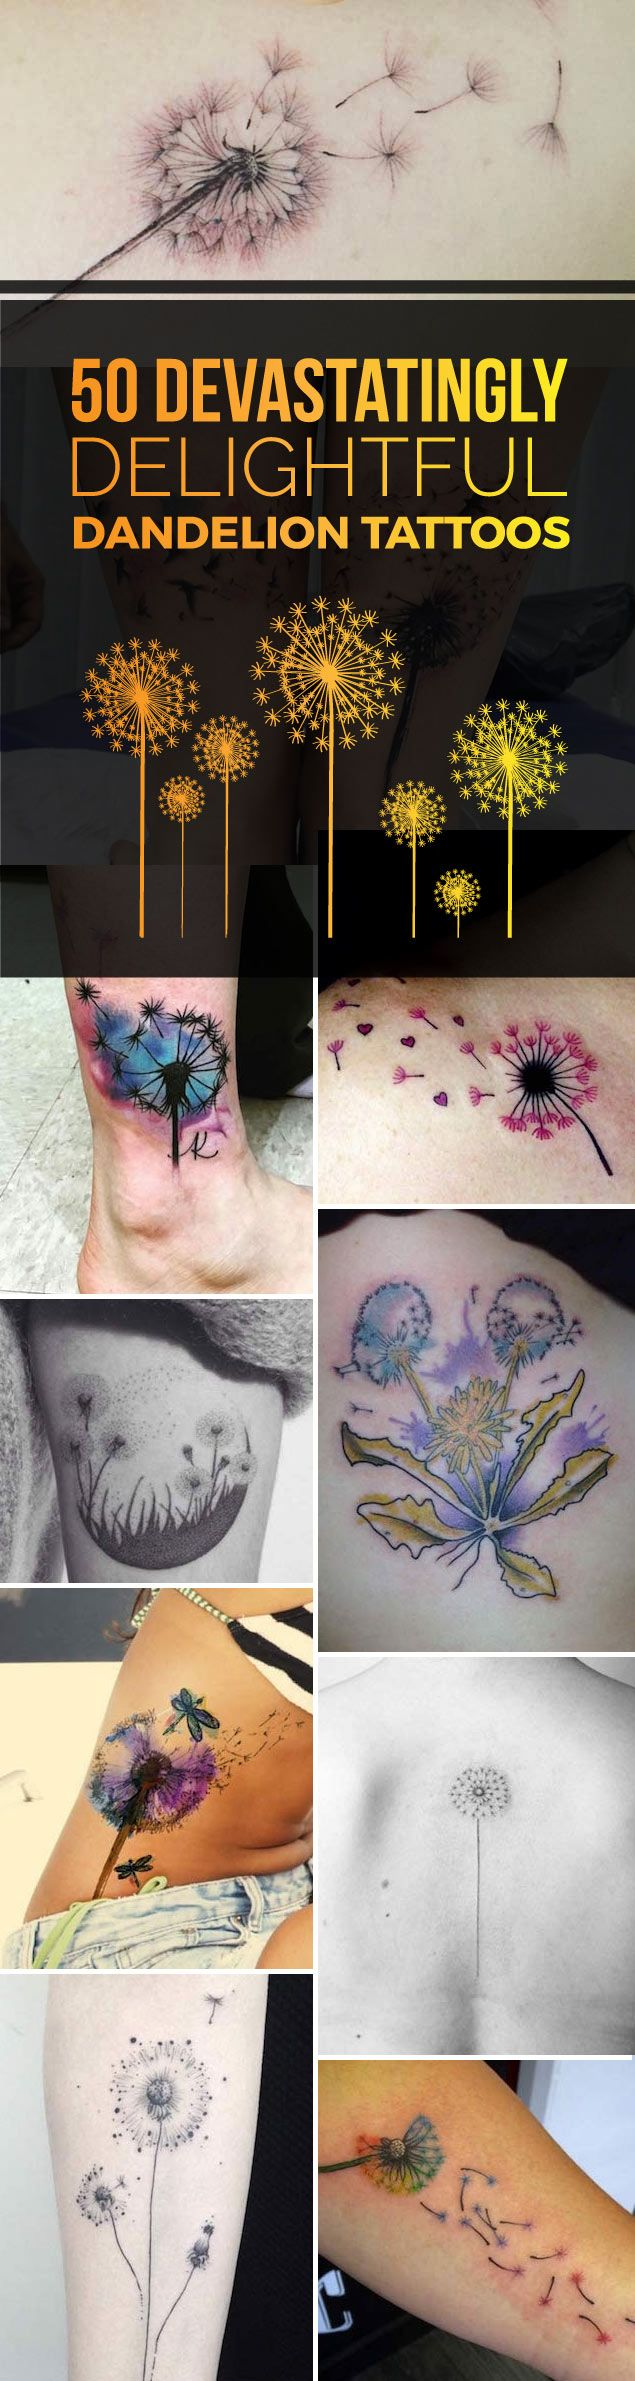 Share Tweet Pin Mail If you have a Pinterest or Instagram account, odds are you've seen your fair share of dandelion tattoos. More specifically, ...